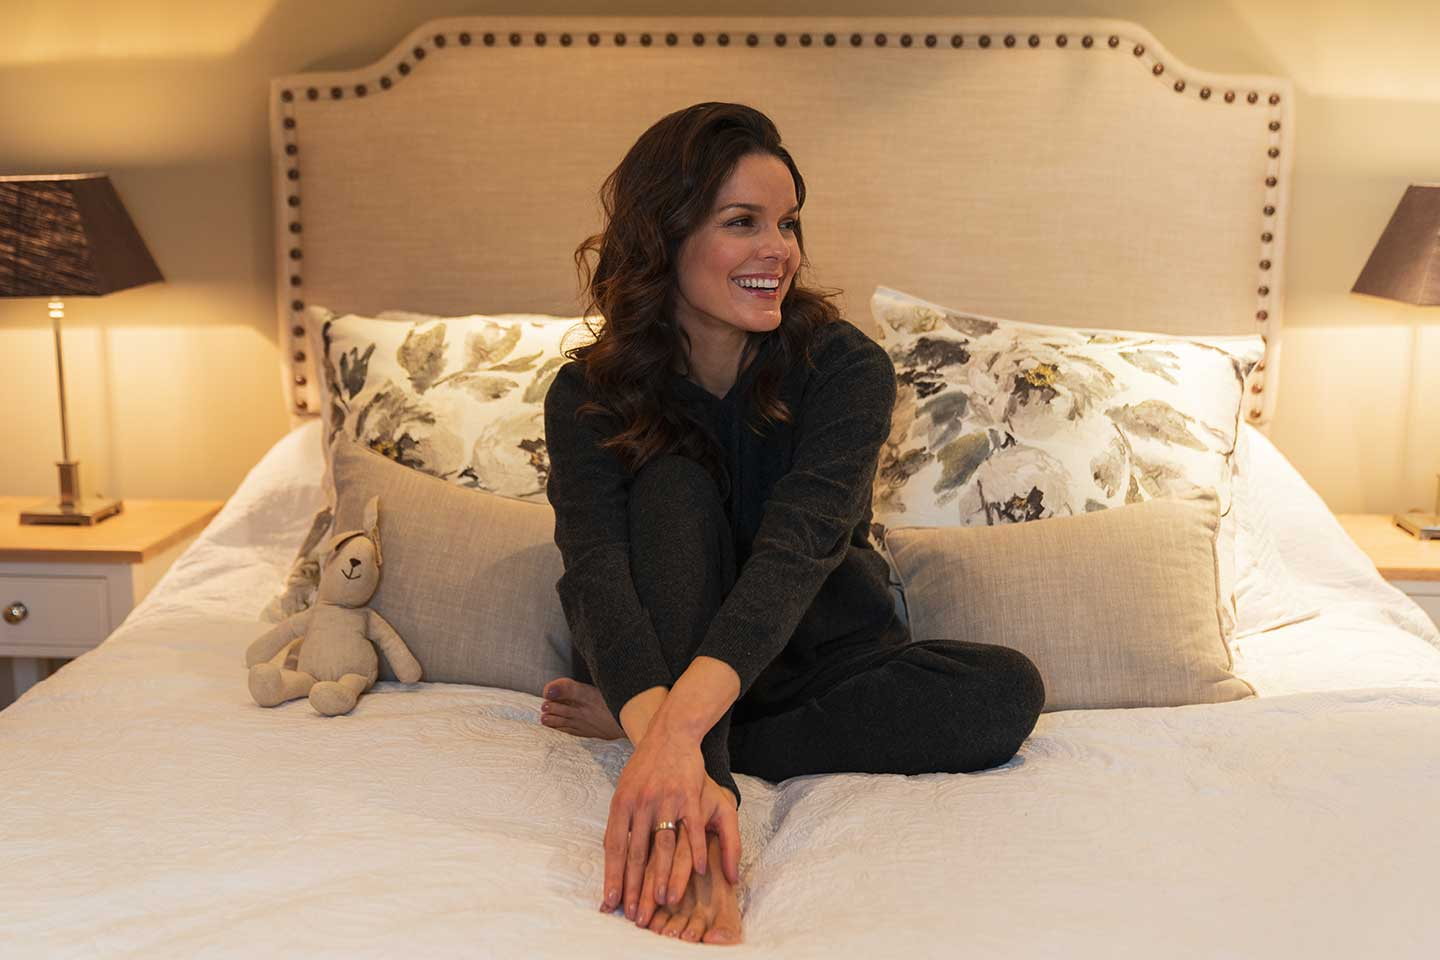 cashmere pyjamas and cashmere loungewear worn to bed